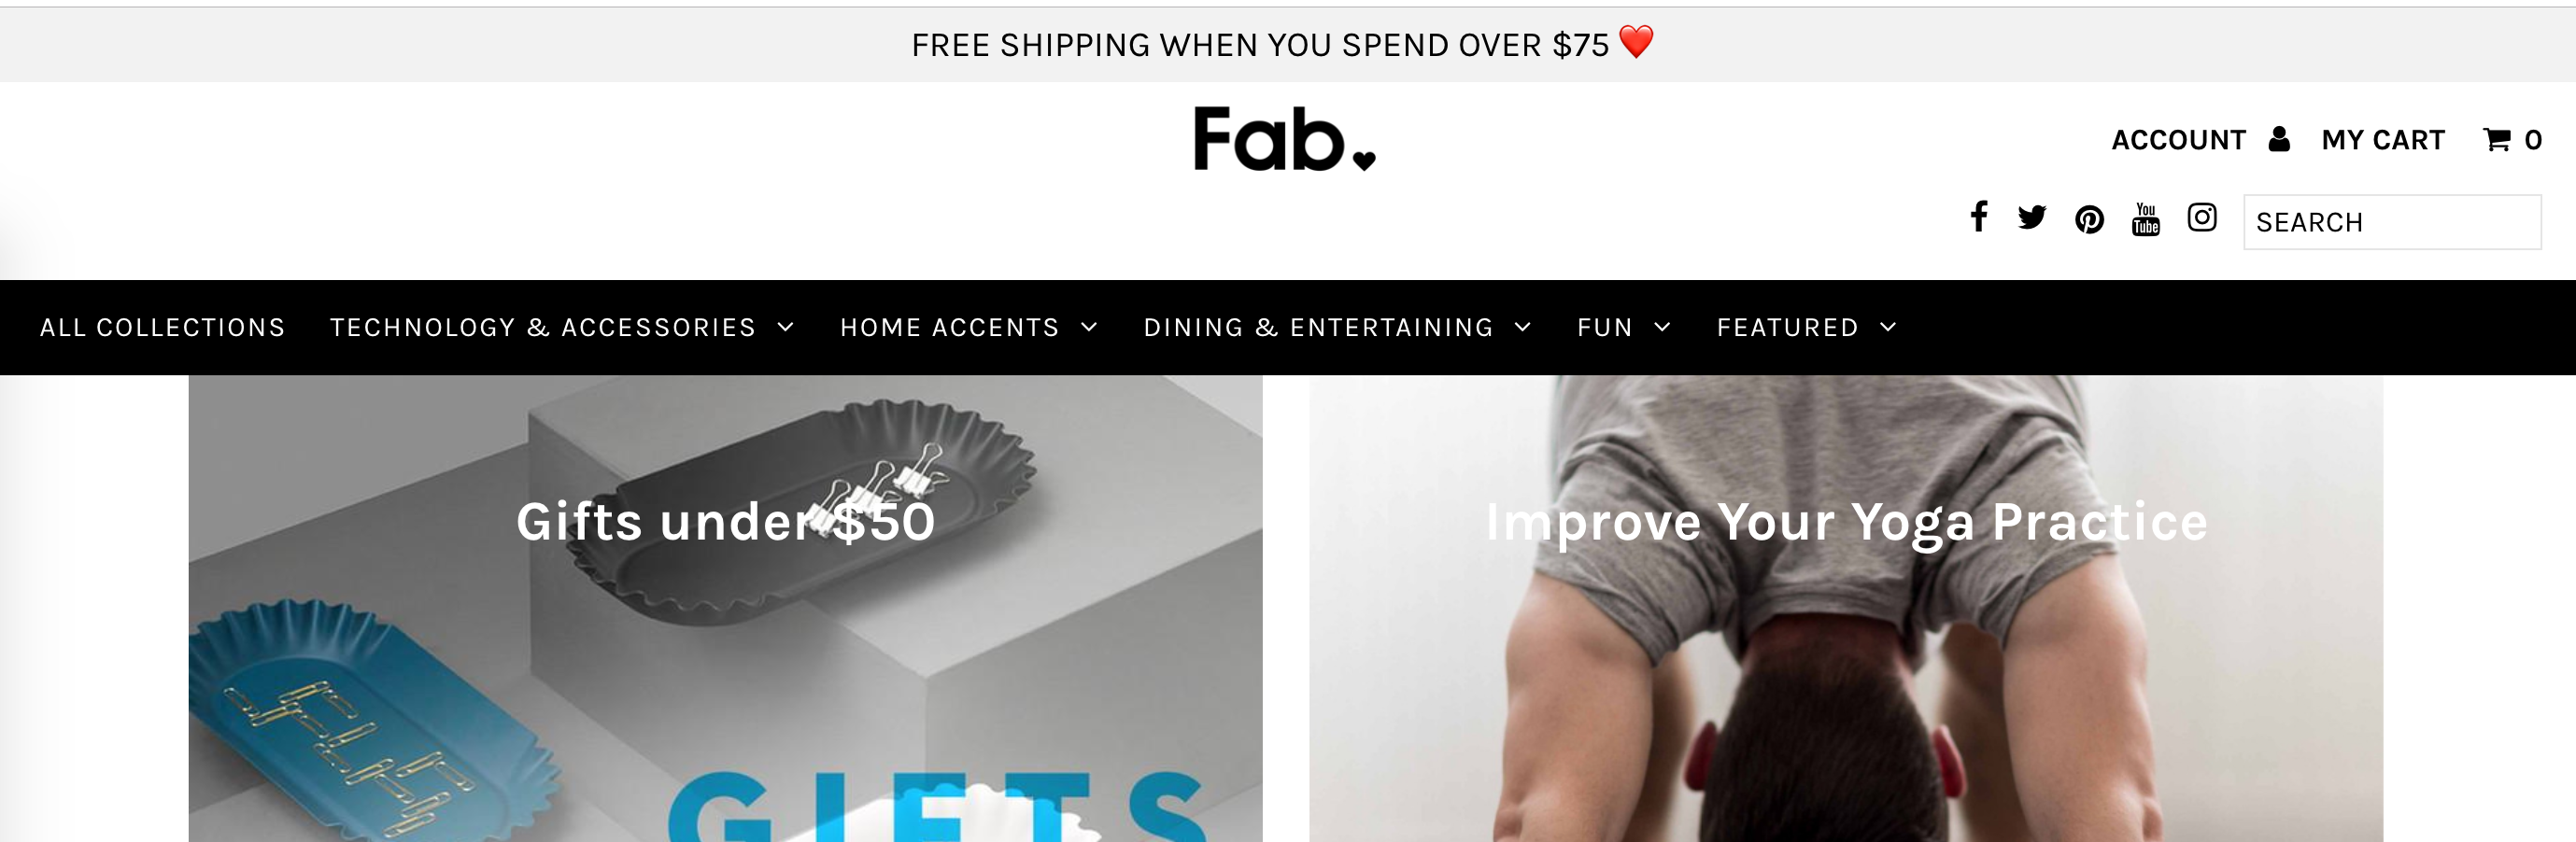 Offer-free-shipping-example-Fab